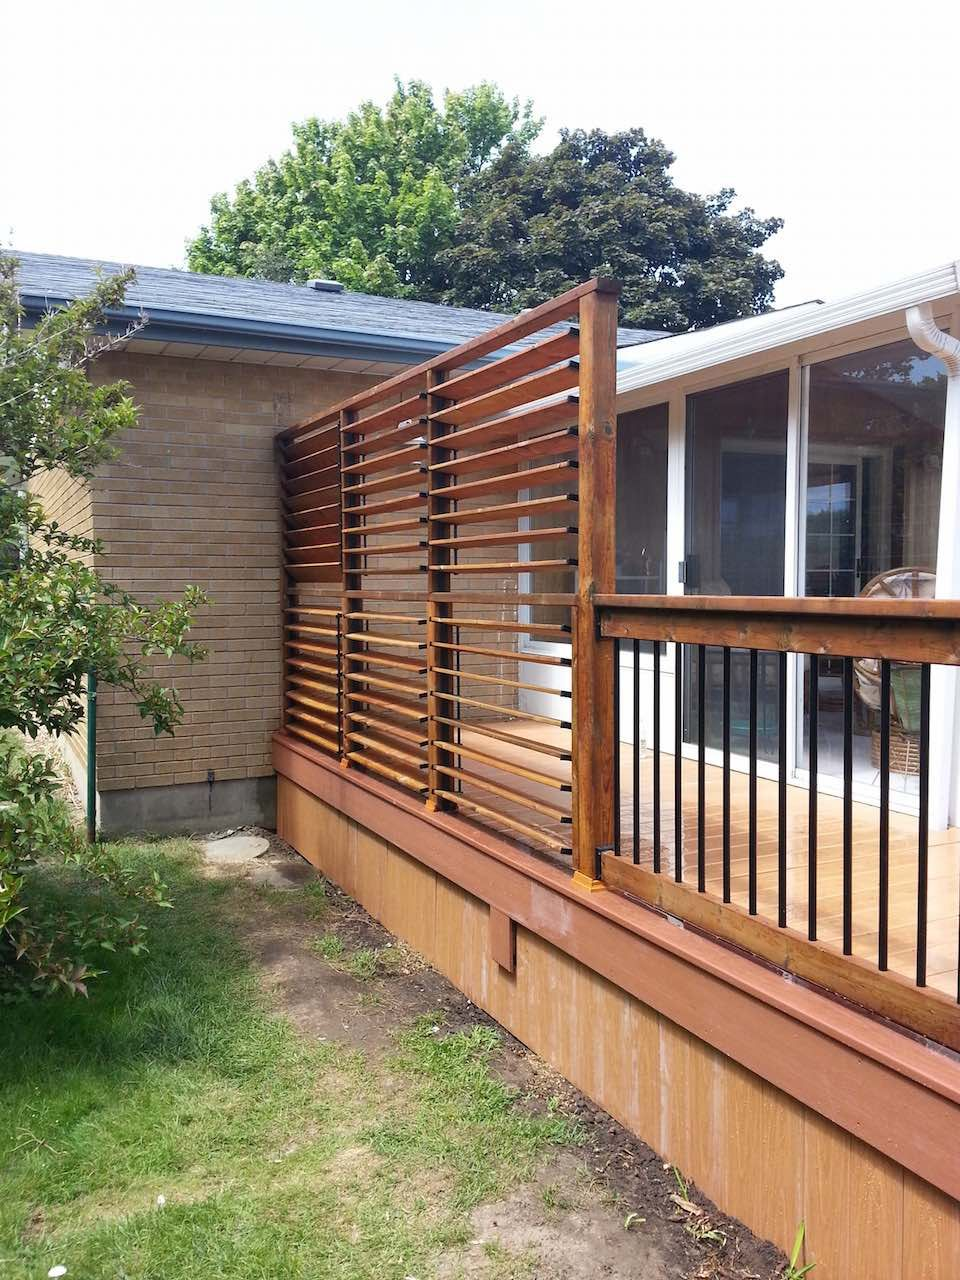 Backyard privacy screen louvers great solution by flex for Backyard screening ideas